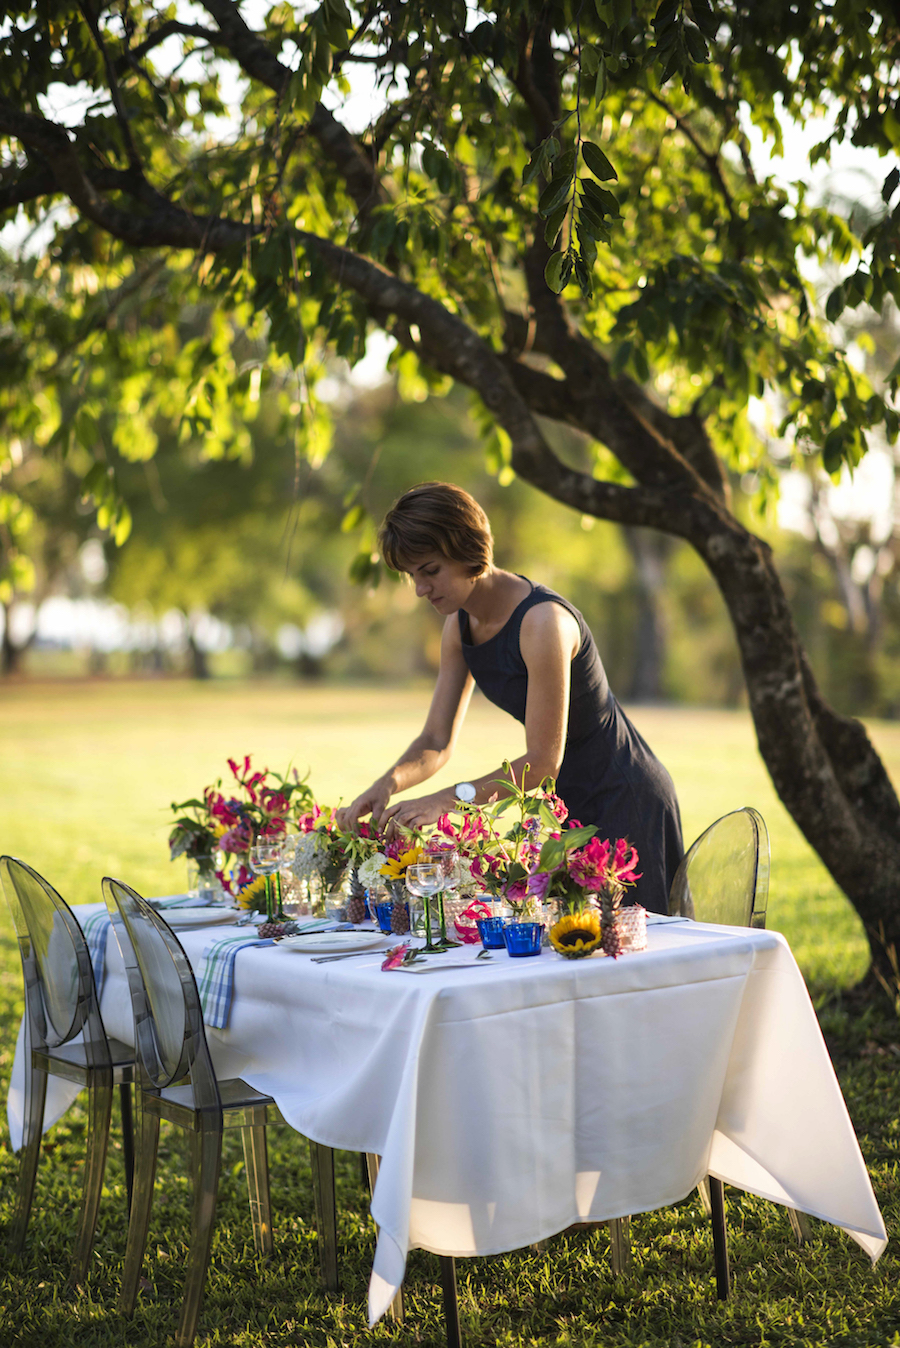 Beija Flor owner and florist, Maria Okwa creates vibrant table of colourful local flowers